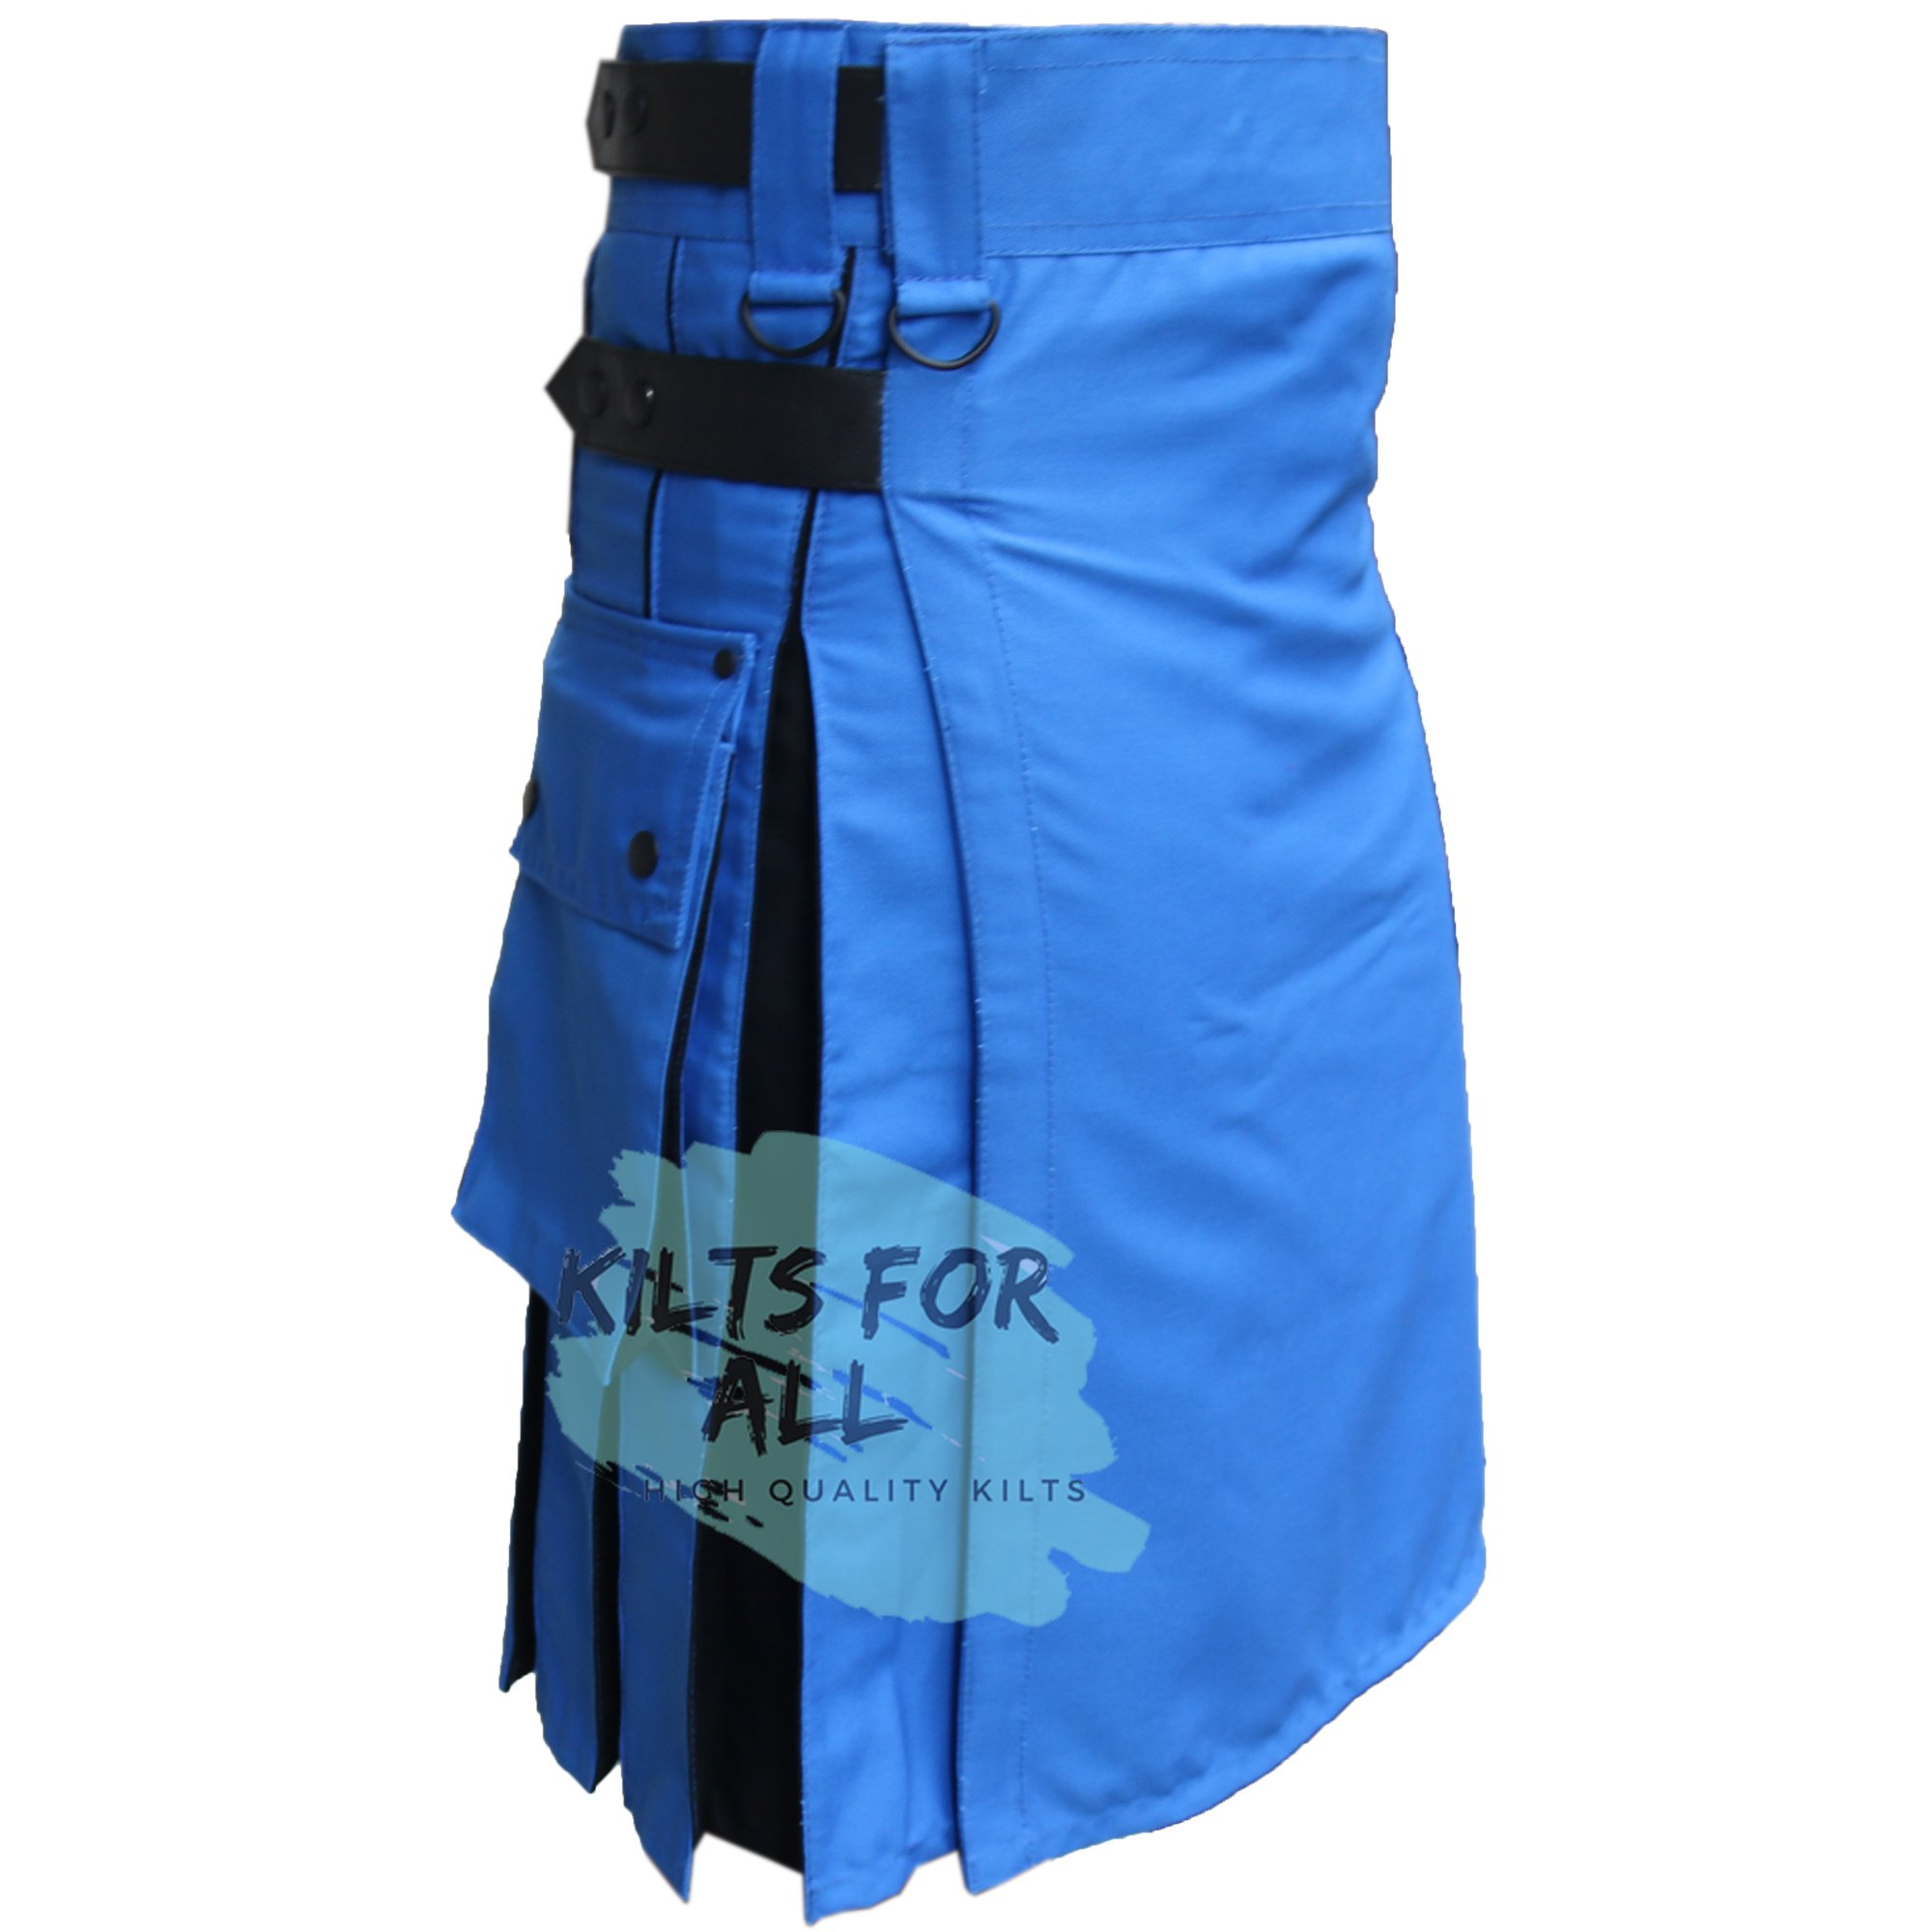 Blue Hybird Leather Straps Utility Kilts For Active Men (36'')